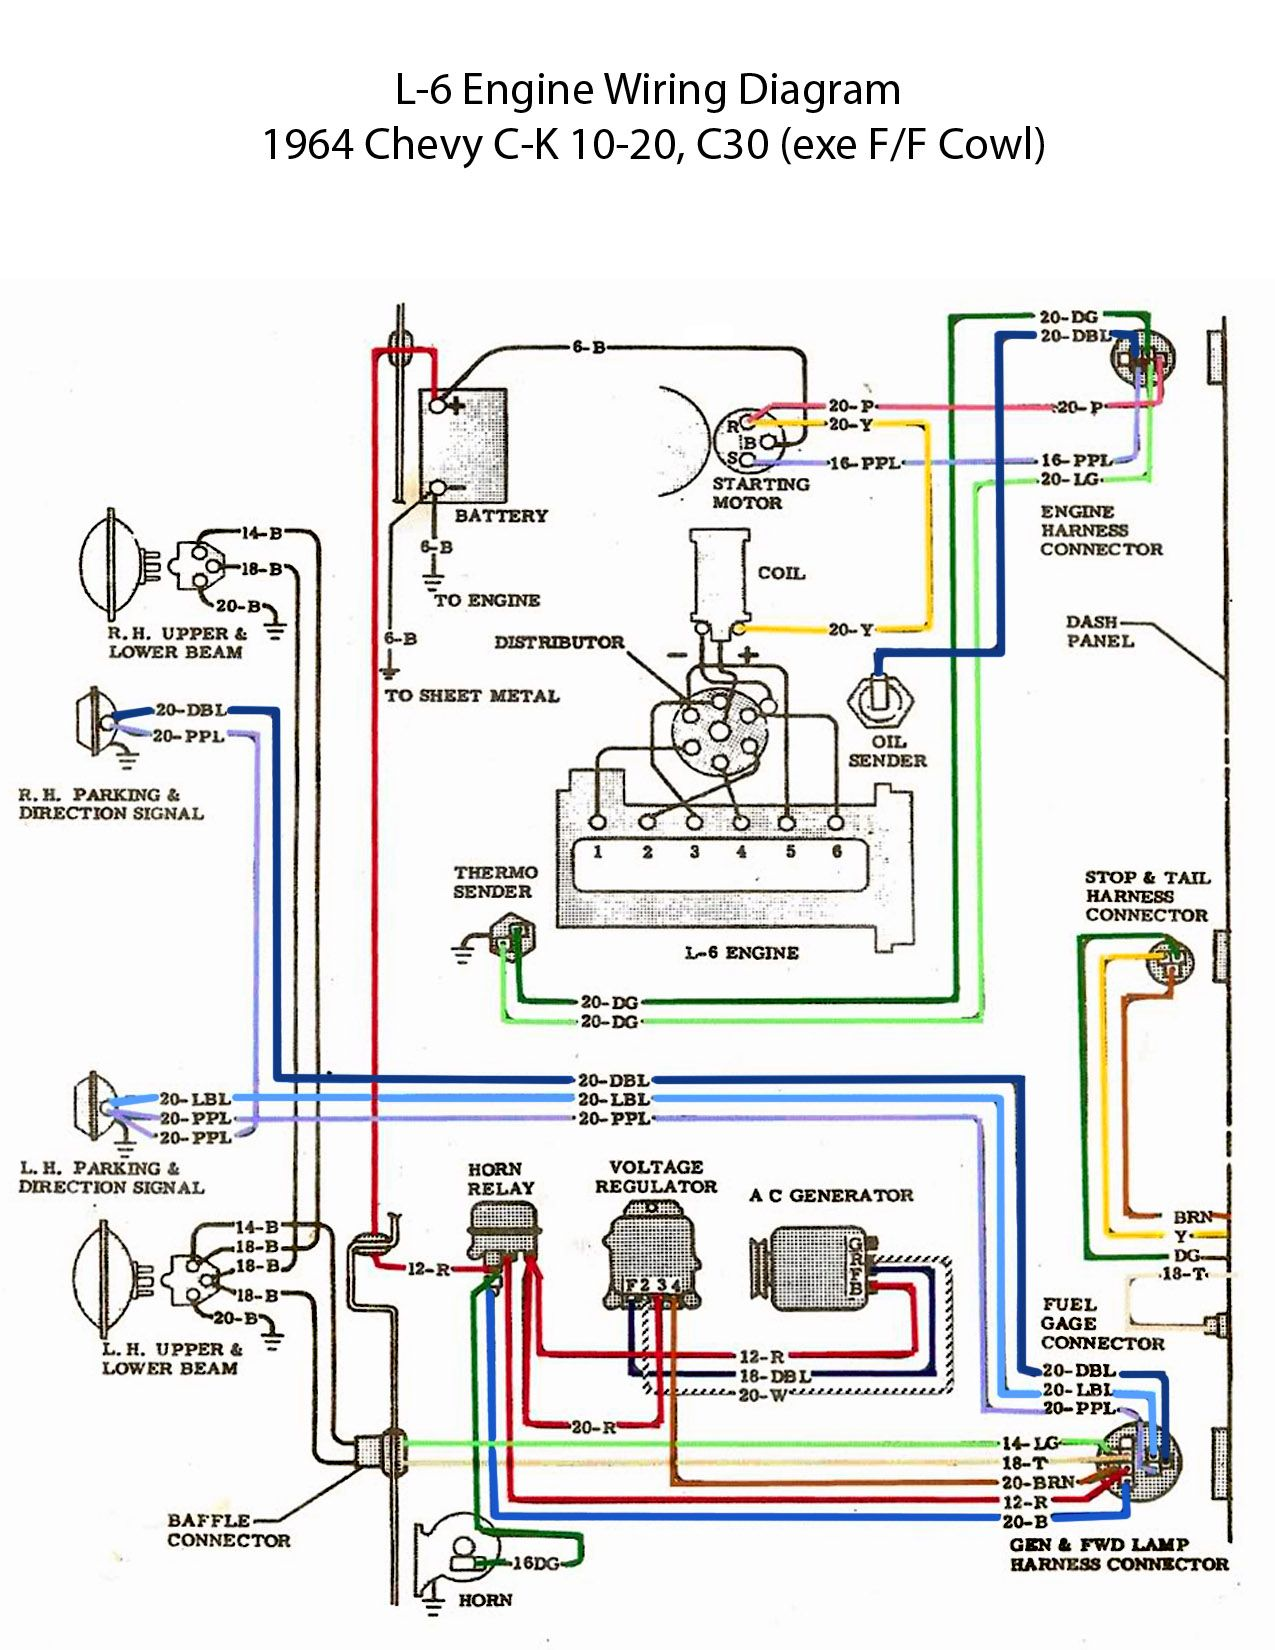 ELECTRIC: L-6 Engine Wiring Diagram | '60s Chevy C10 - Wiring ... on